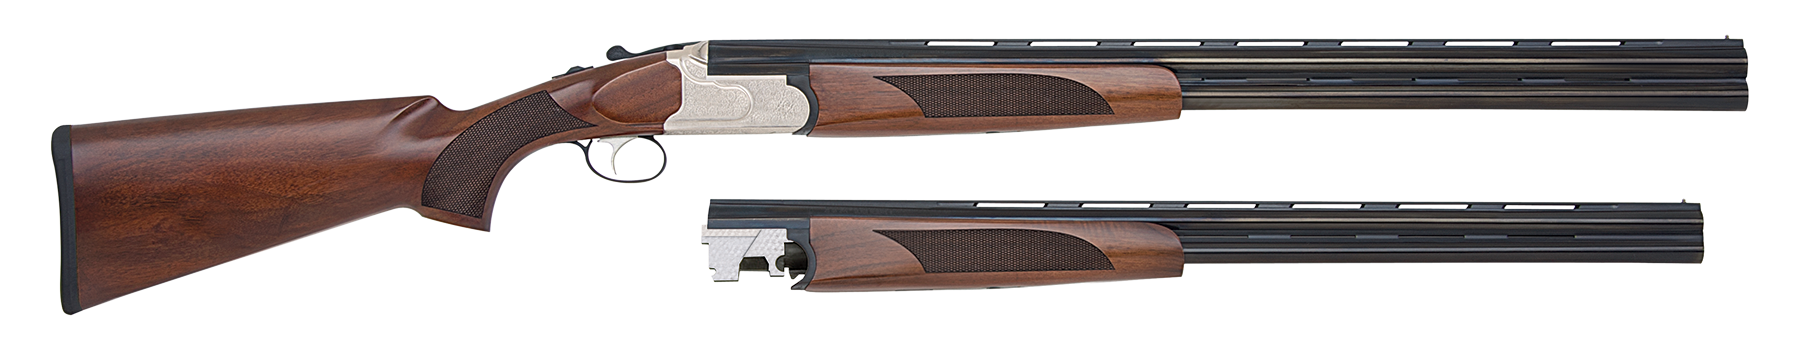 Mossberg 75442 Silver Reserve II Field Over/Under Over/Under N/A 12/20 Gauge Blued Barrel/Silver Receiver